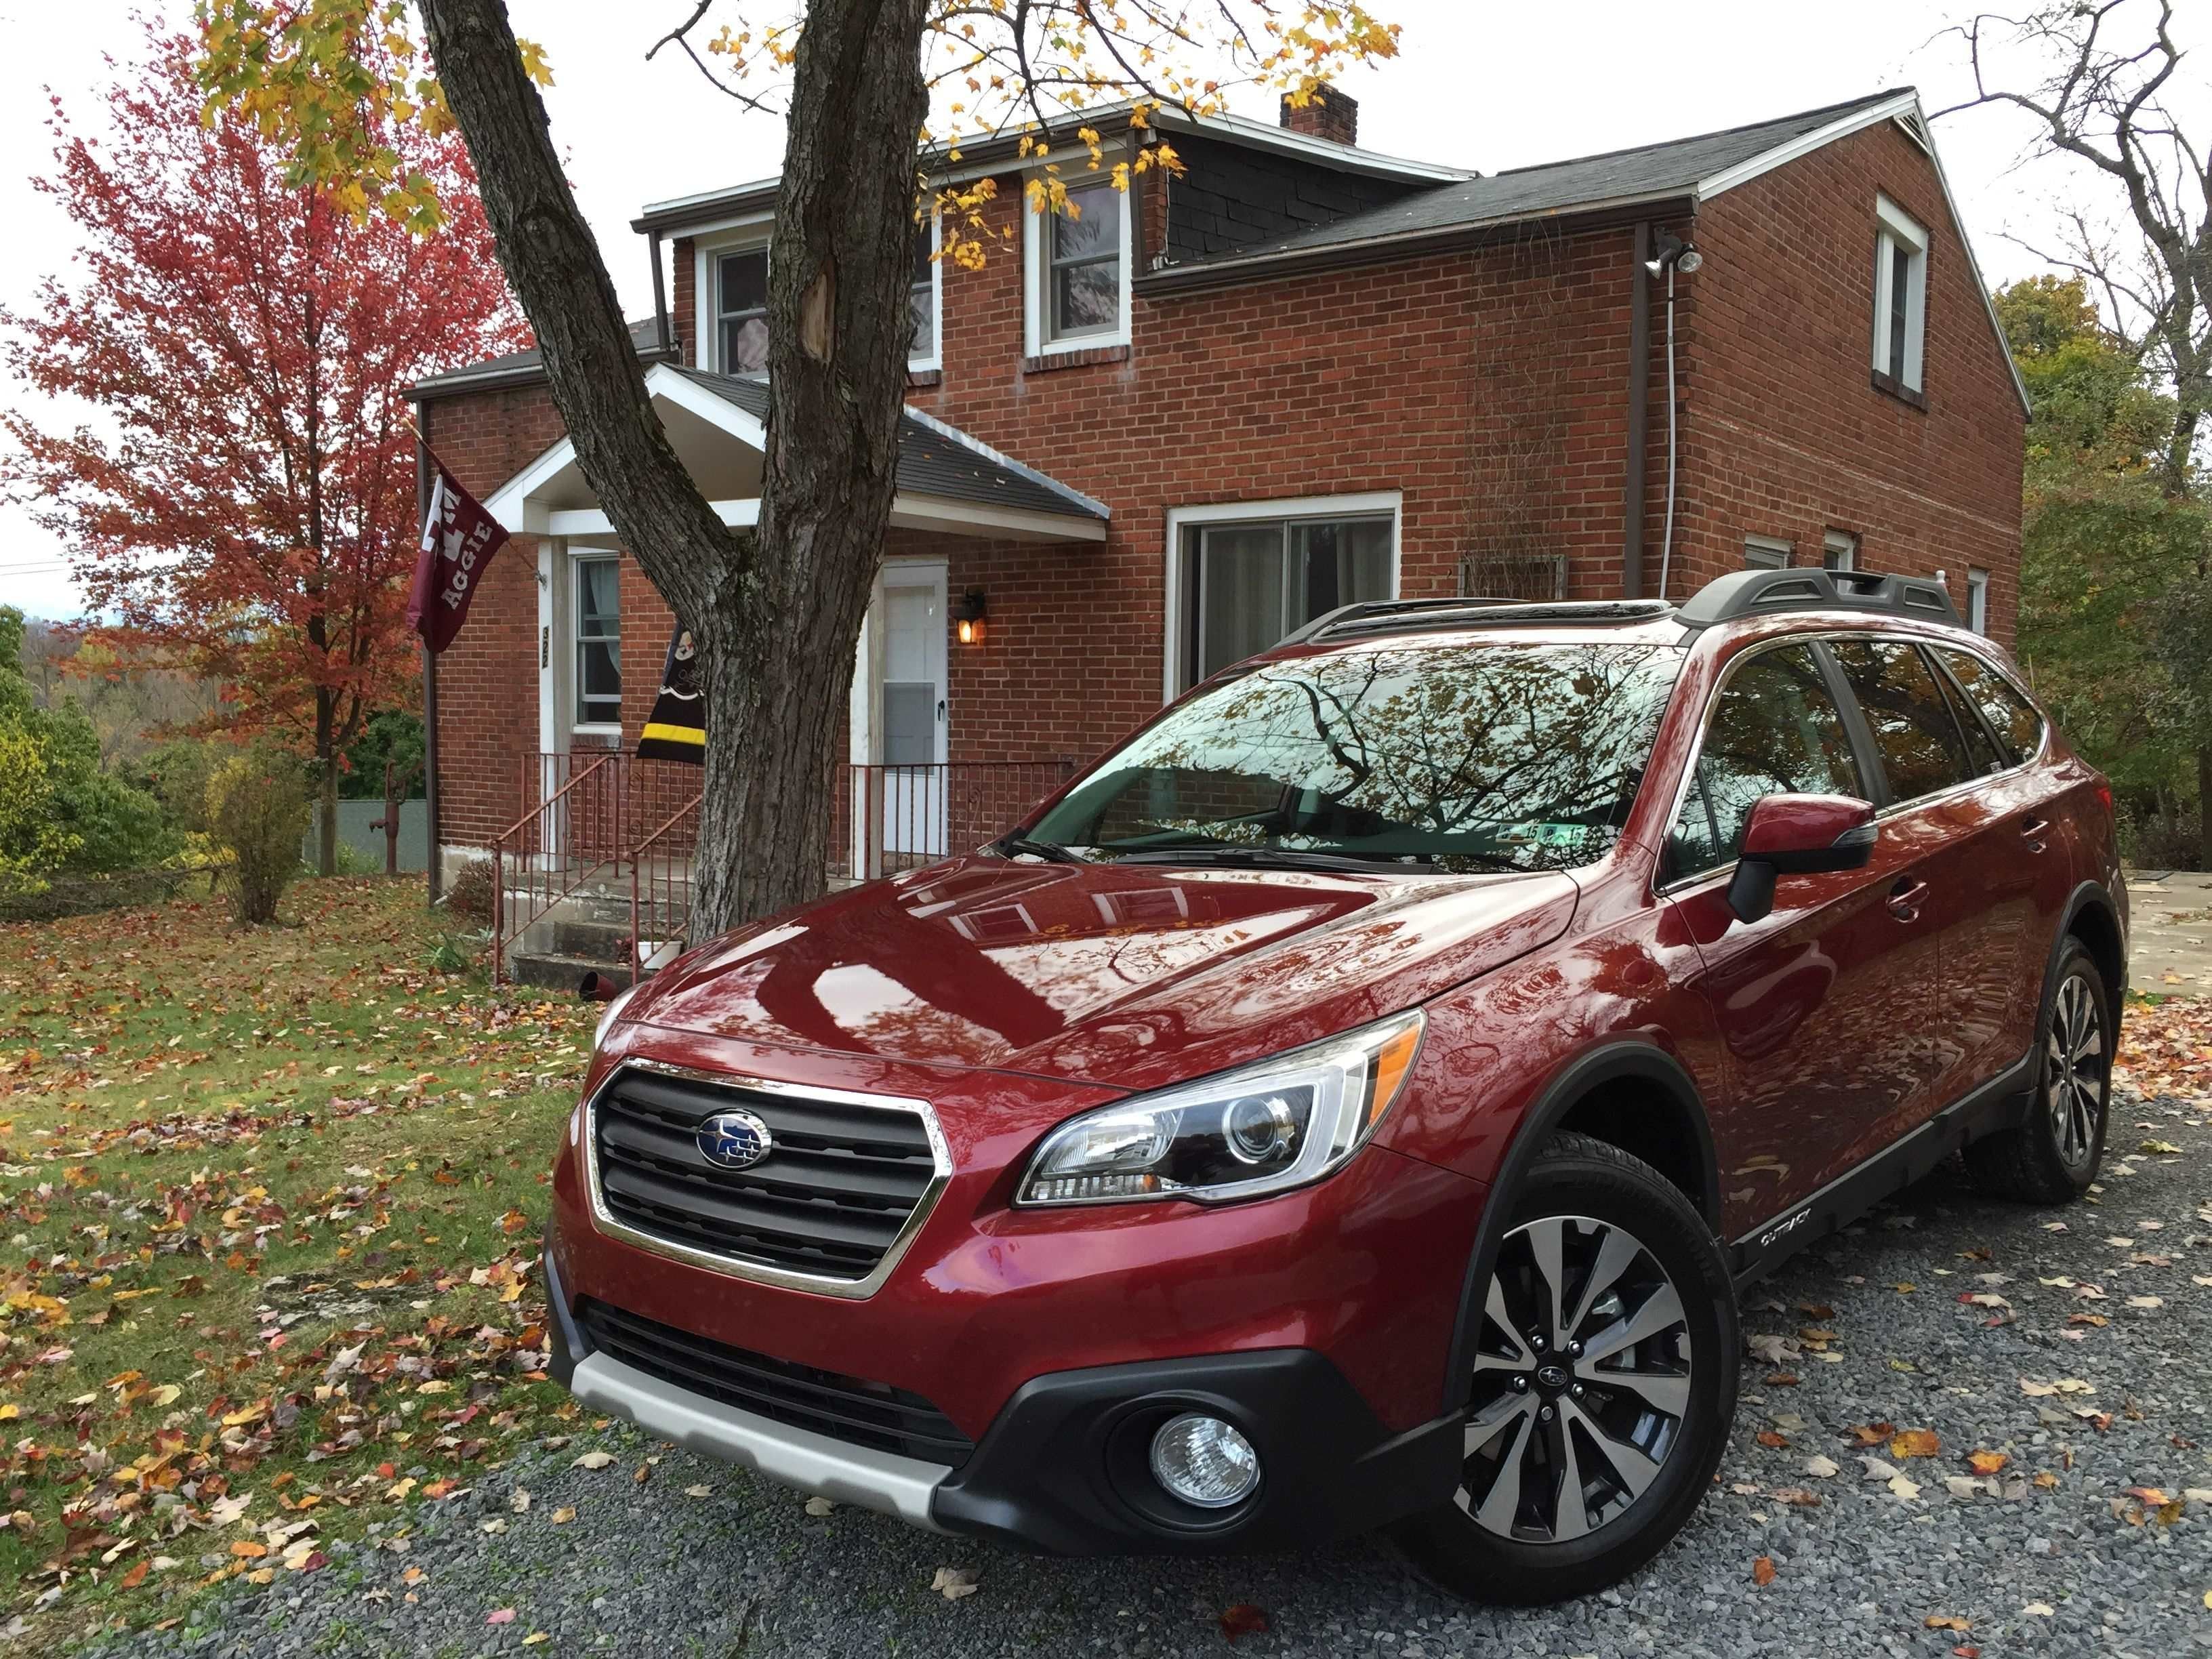 111746d1413651063 2015 outback mods fall colors sm jpg 3 264